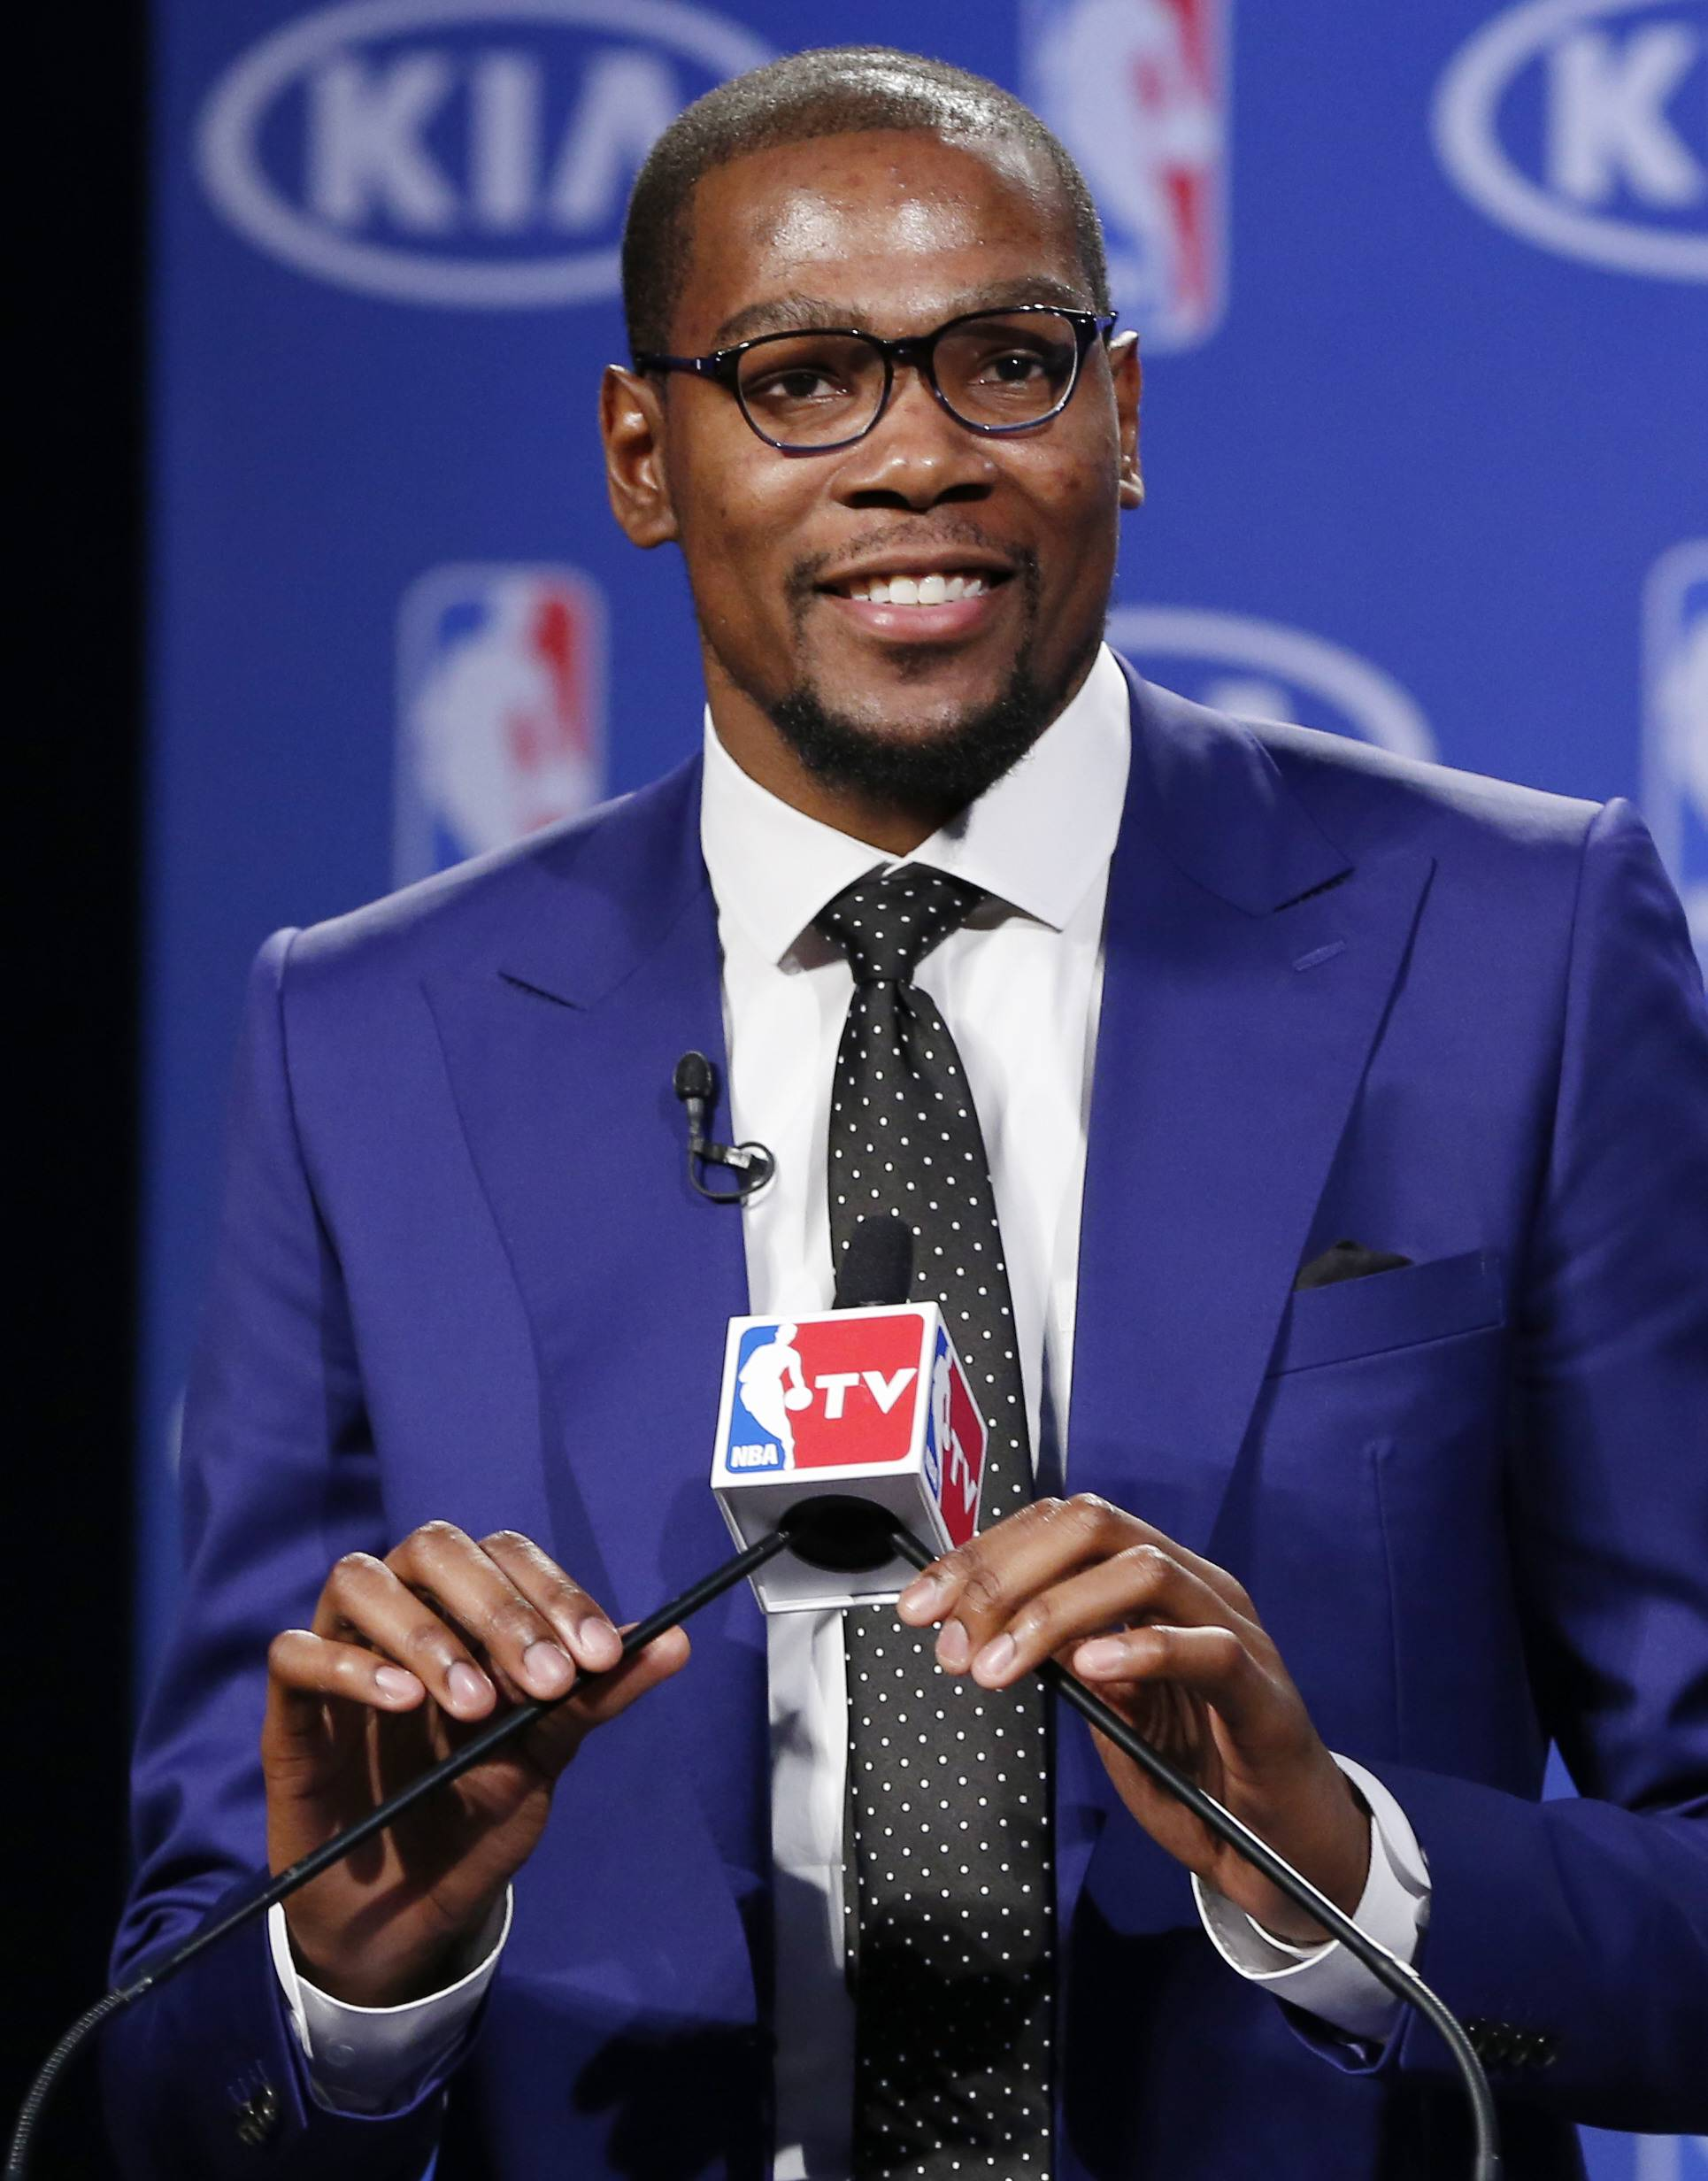 Oklahoma City Thunder's Kevin Durant speaks at the news conference announcing that that Durant is the winner of the 2013-14 Kia NBA Basketball Most Value Player Award in Oklahoma City, Tuesday, May 6, 2014.